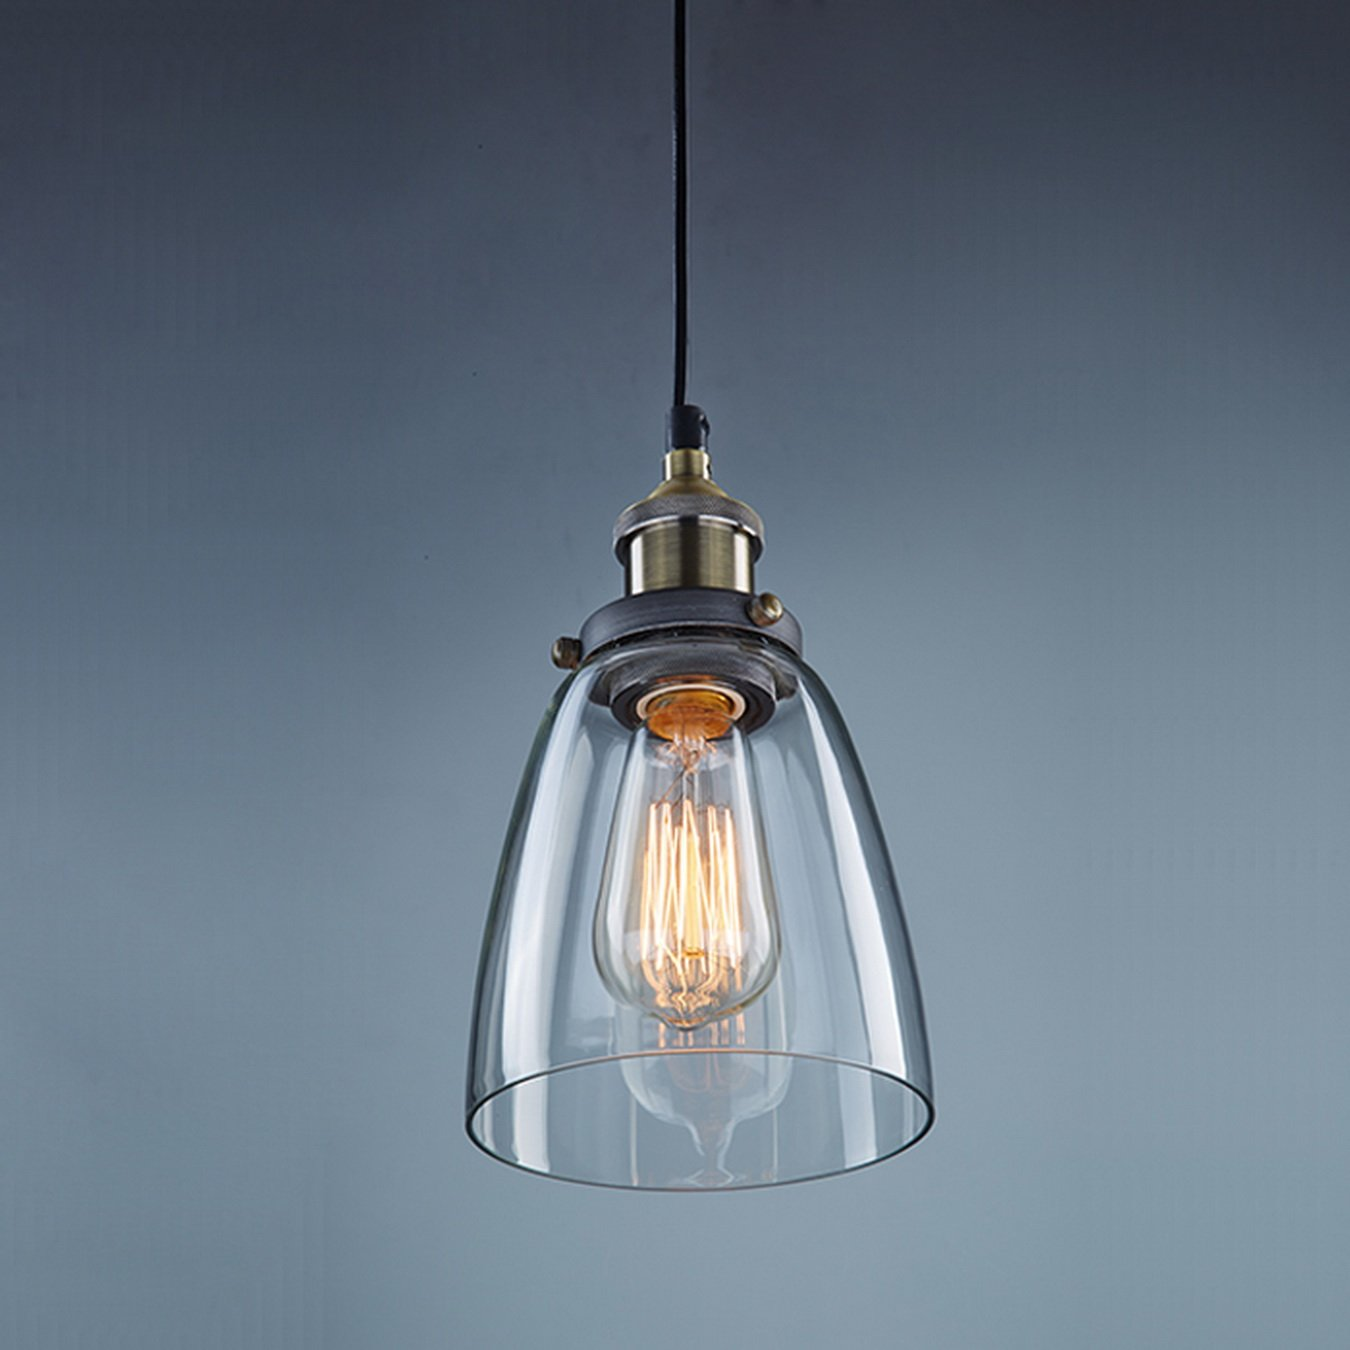 vintage lighting pendants. CLAXY Vintage Industrial Ceiling Glass Pendant Light: Amazon.co.uk: Lighting Pendants Amazon UK